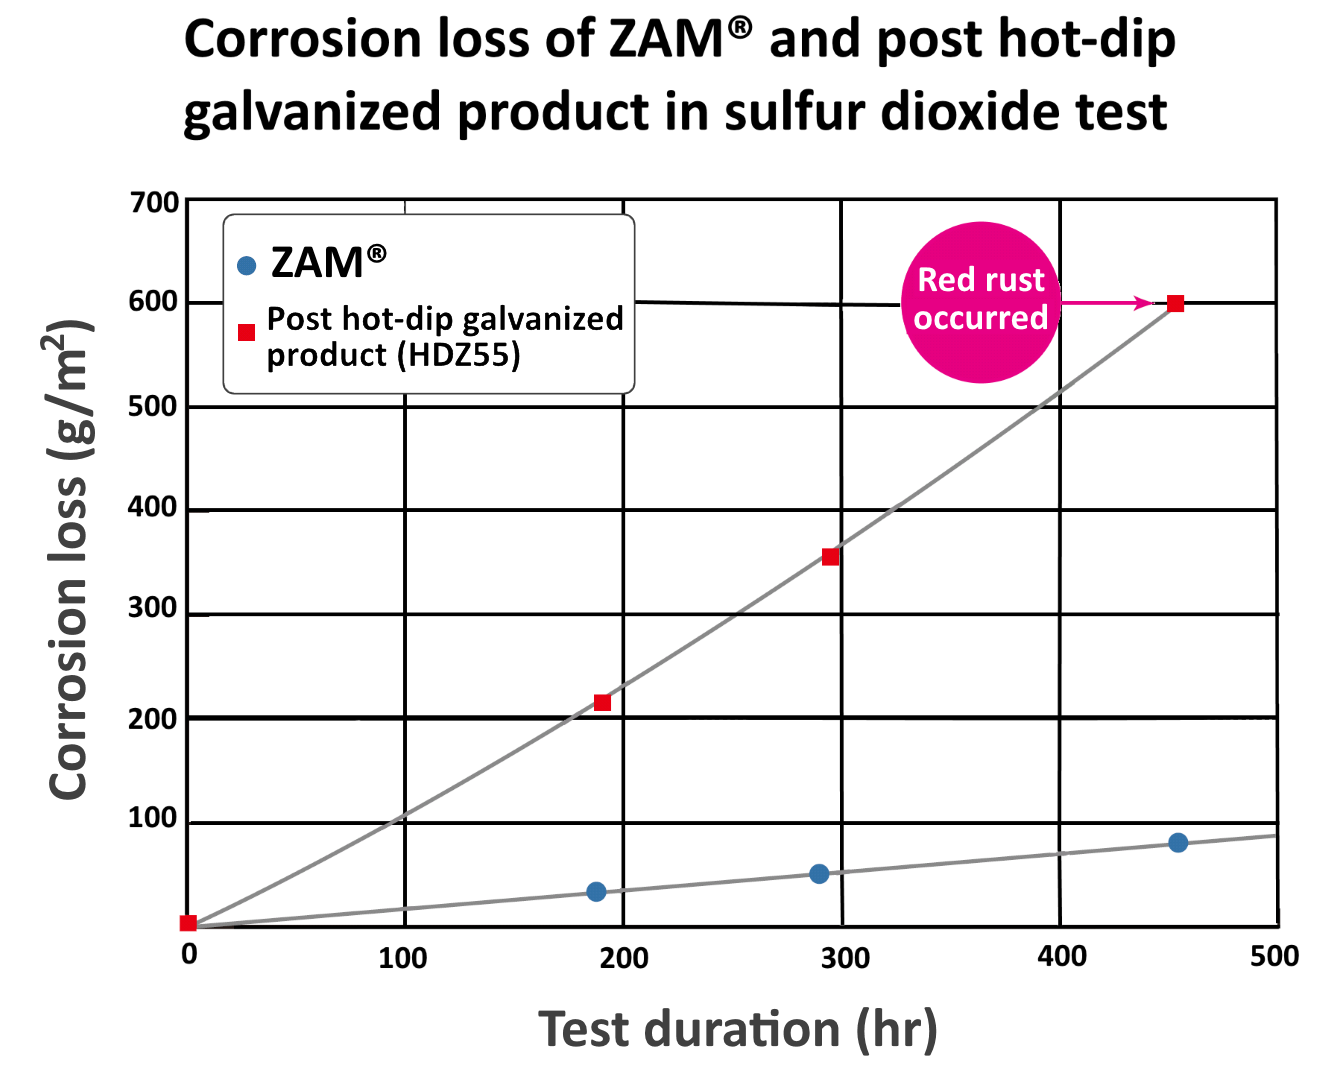 Graph showing corrosion loss of ZAM® and post hot-dip galvanized product in sulfur dioxide test